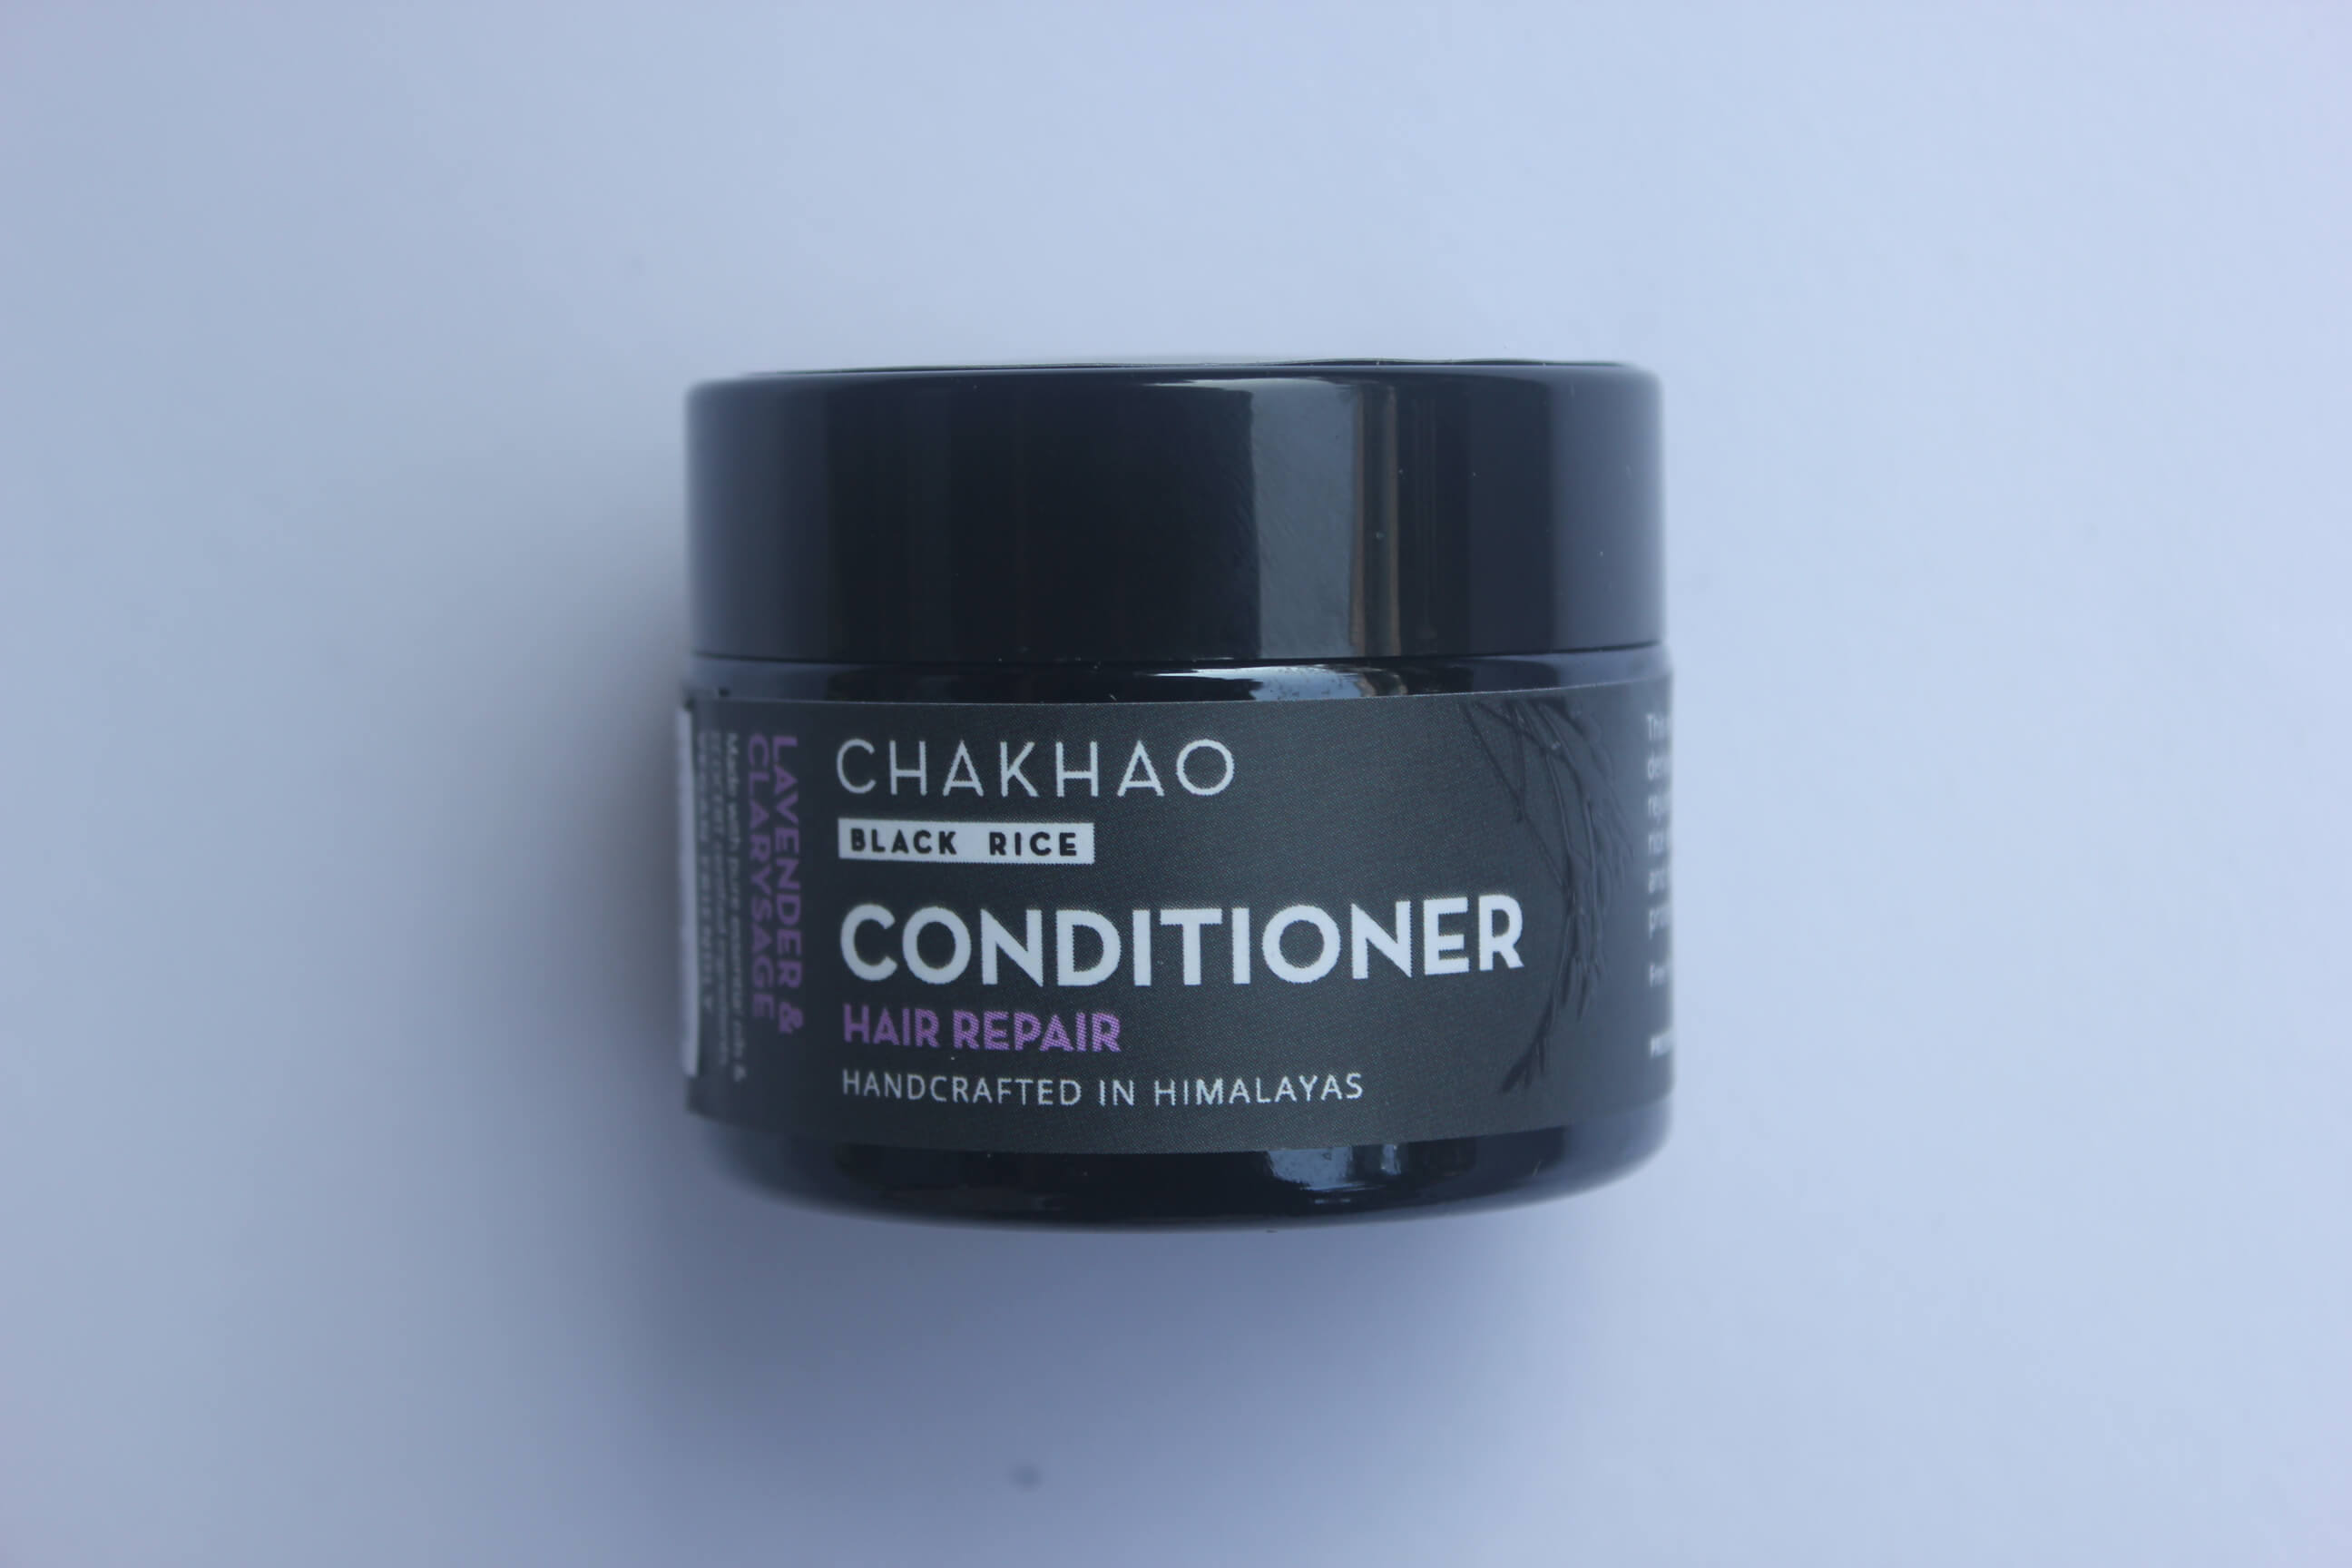 chakhao-hair-repair-conditioner